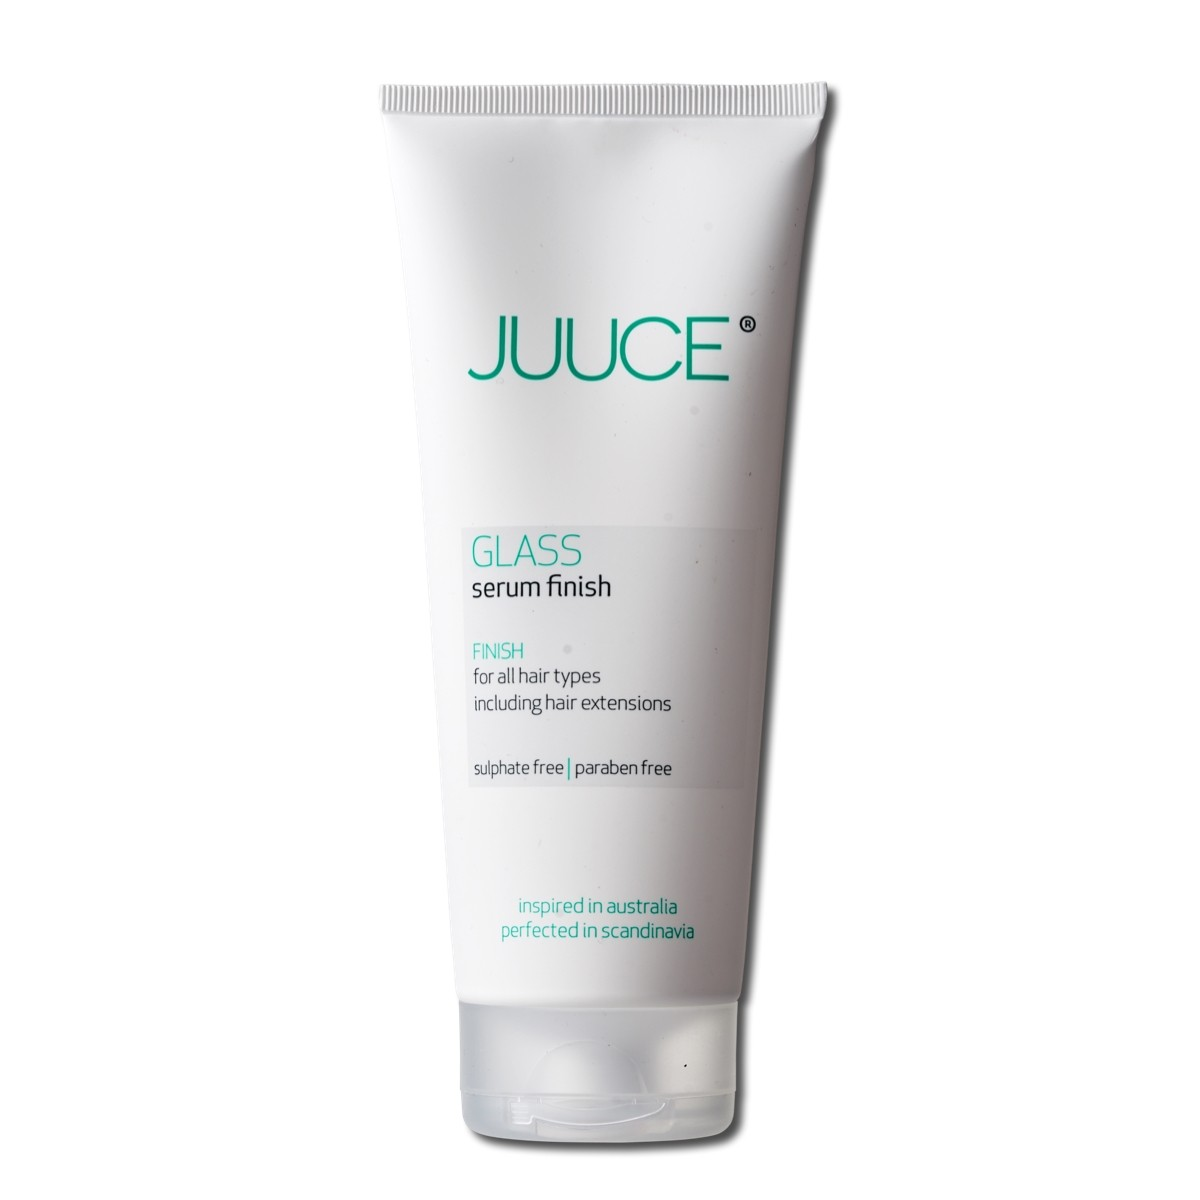 JUUCE Glass Serum Finish 200 ml-33